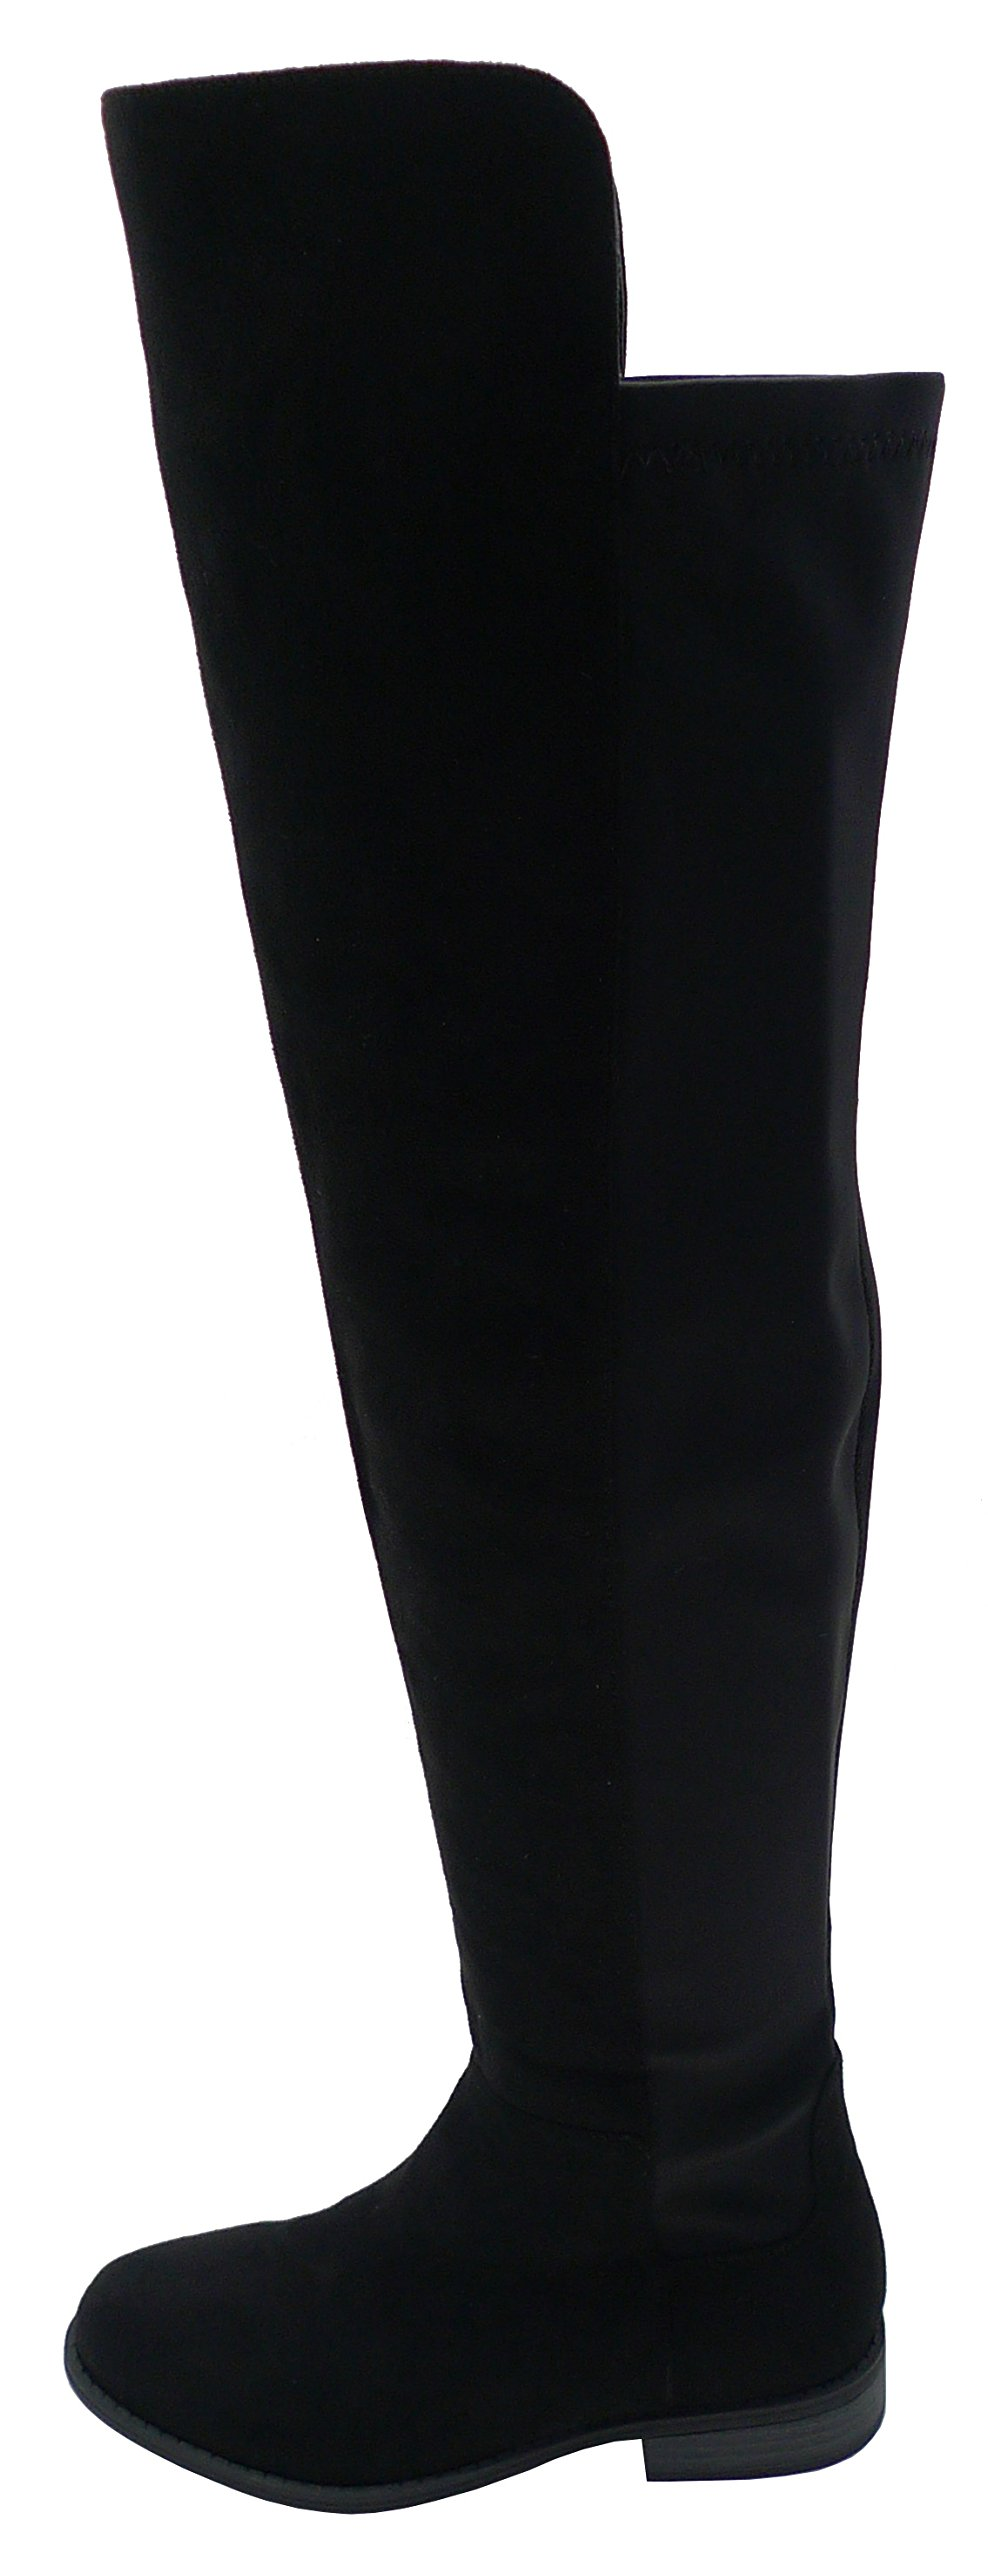 Wild Diva Women's Over The Knee Thigh High Inside Zipper Flat Heel Boot,6 B(M) US,Black Venus Suede